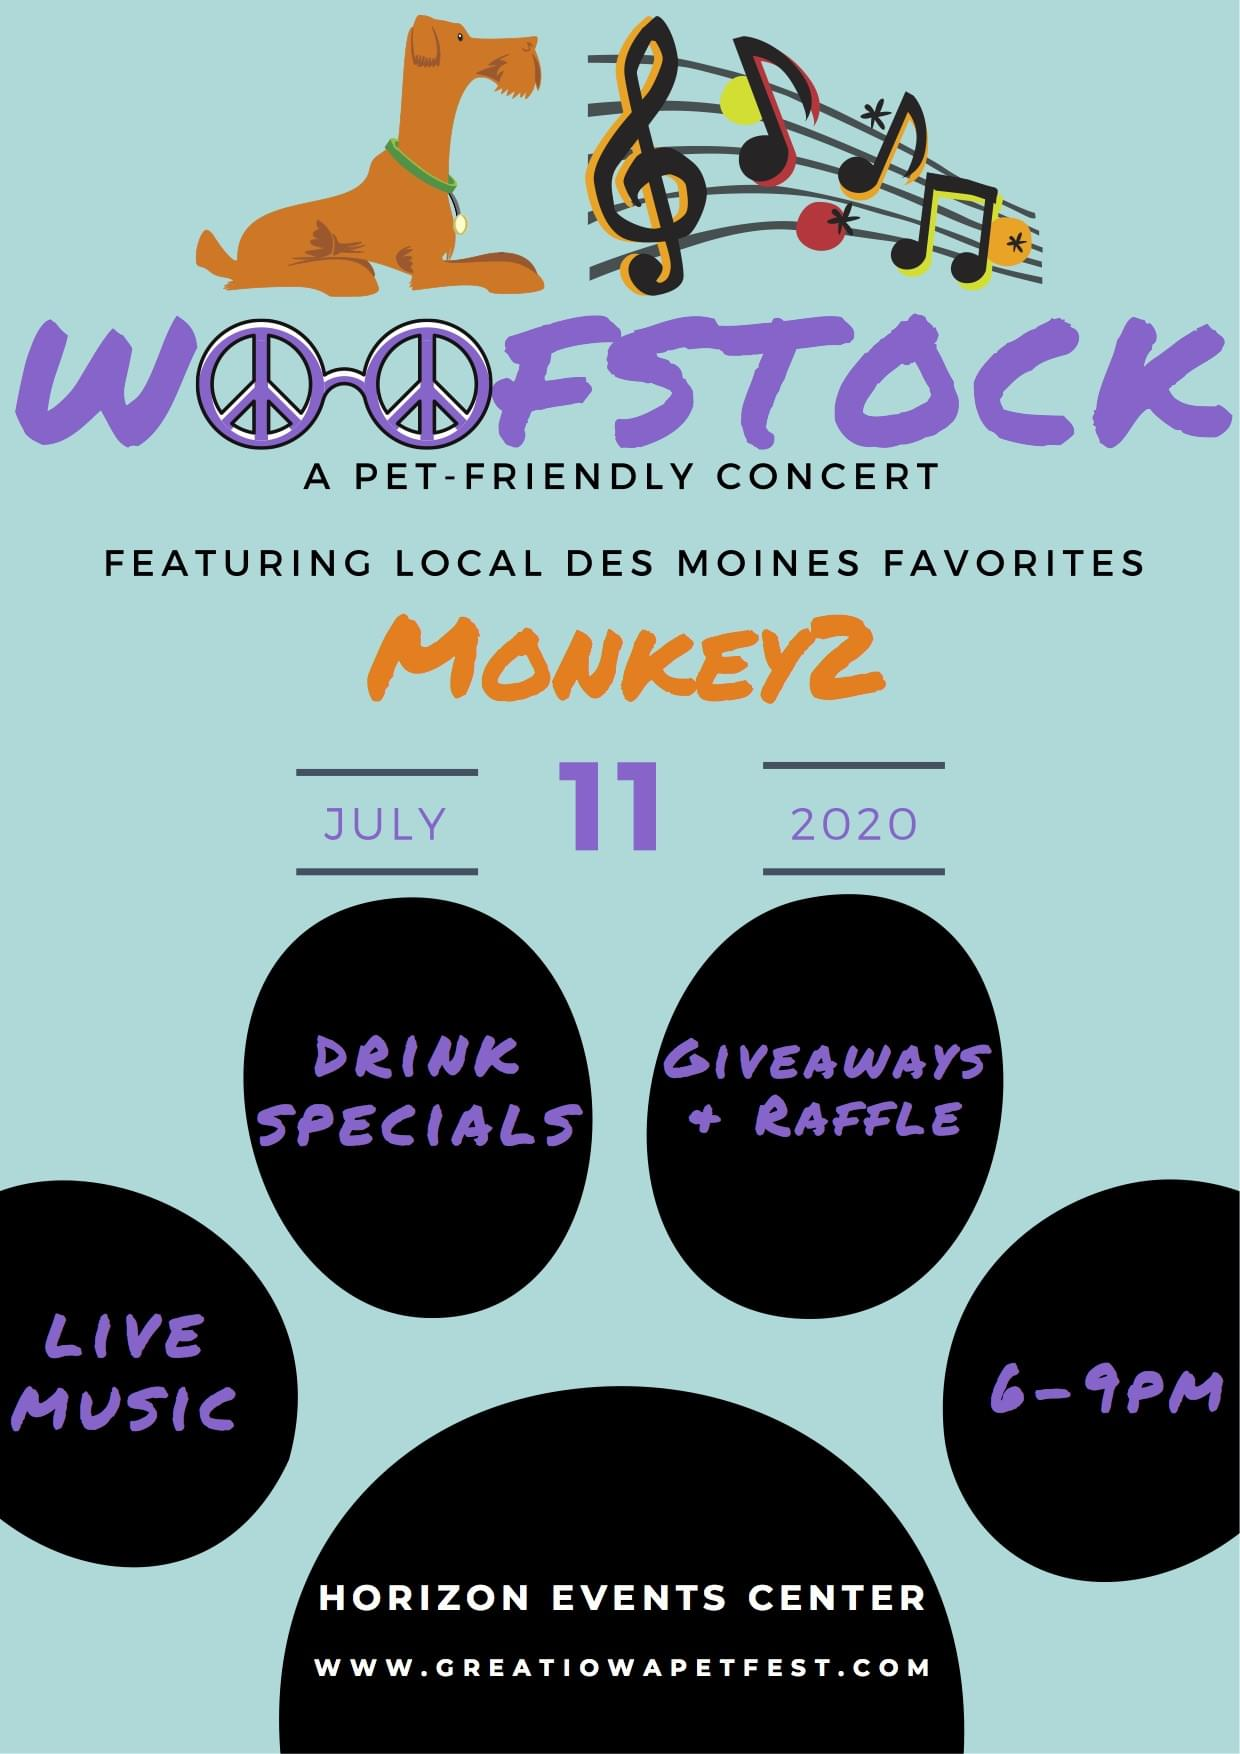 Woofstock and Paws and Pints at the Greater Iowa Pet Fest